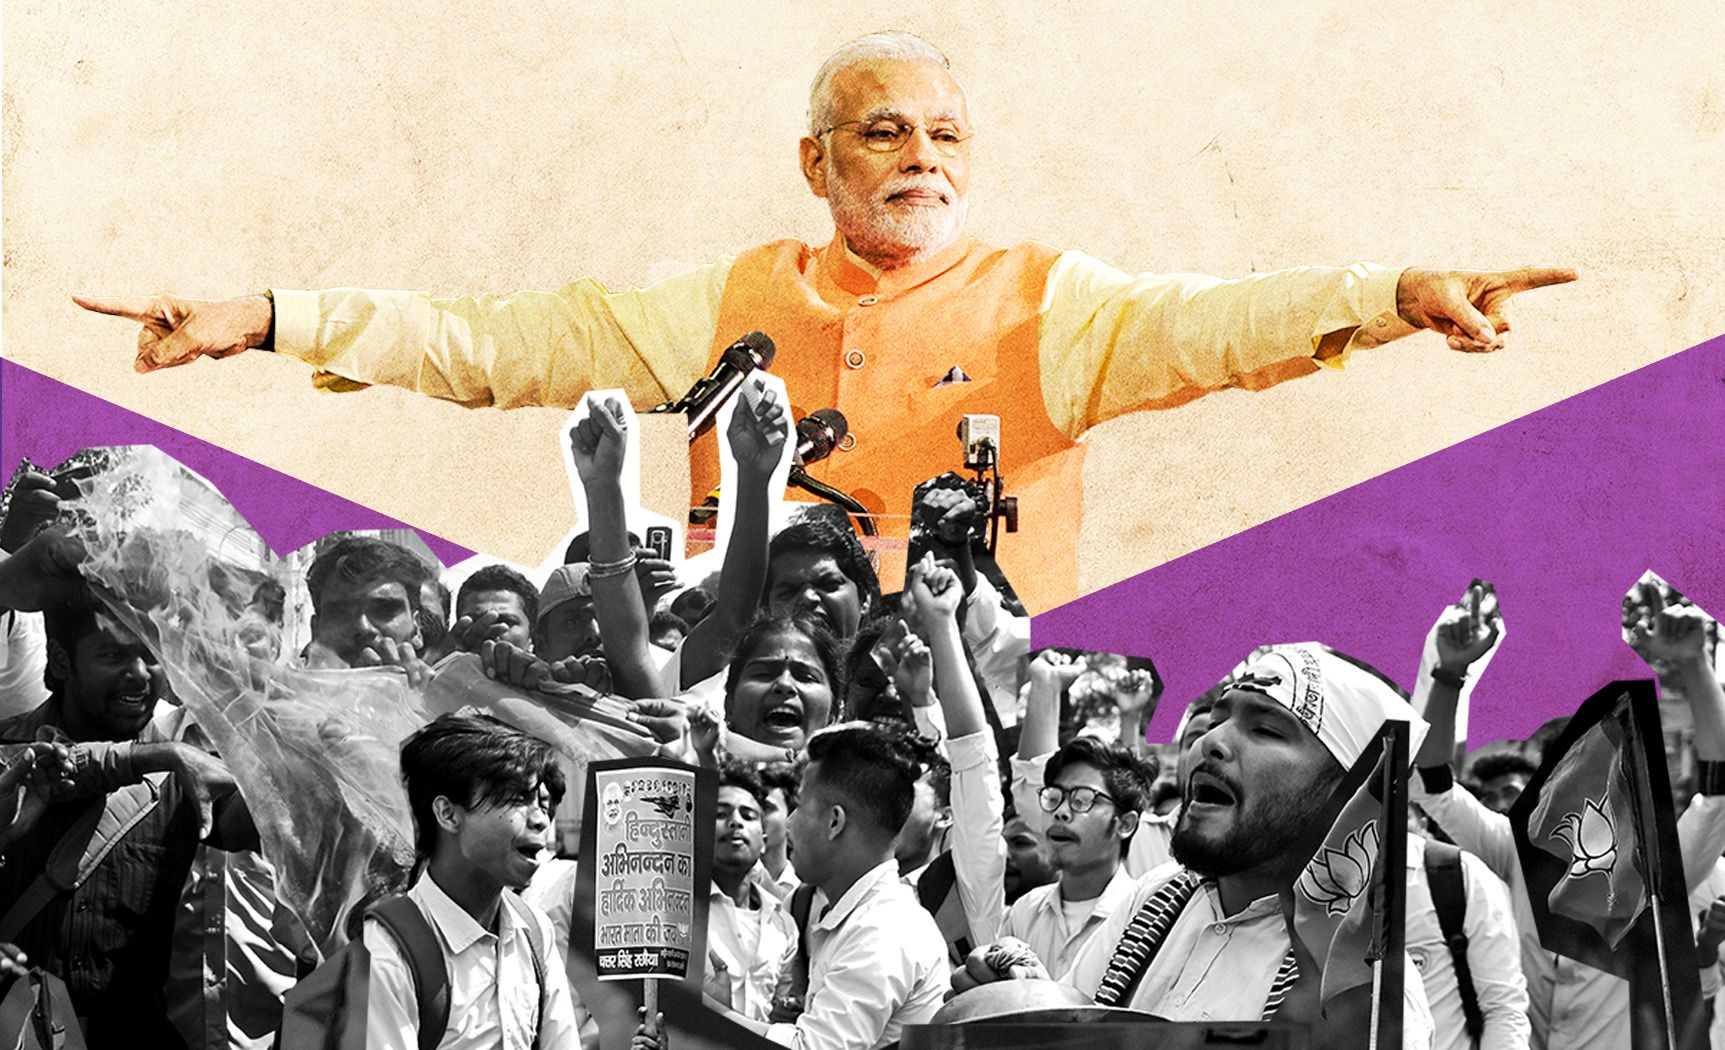 What We're Watching: India's citizenship law challenged